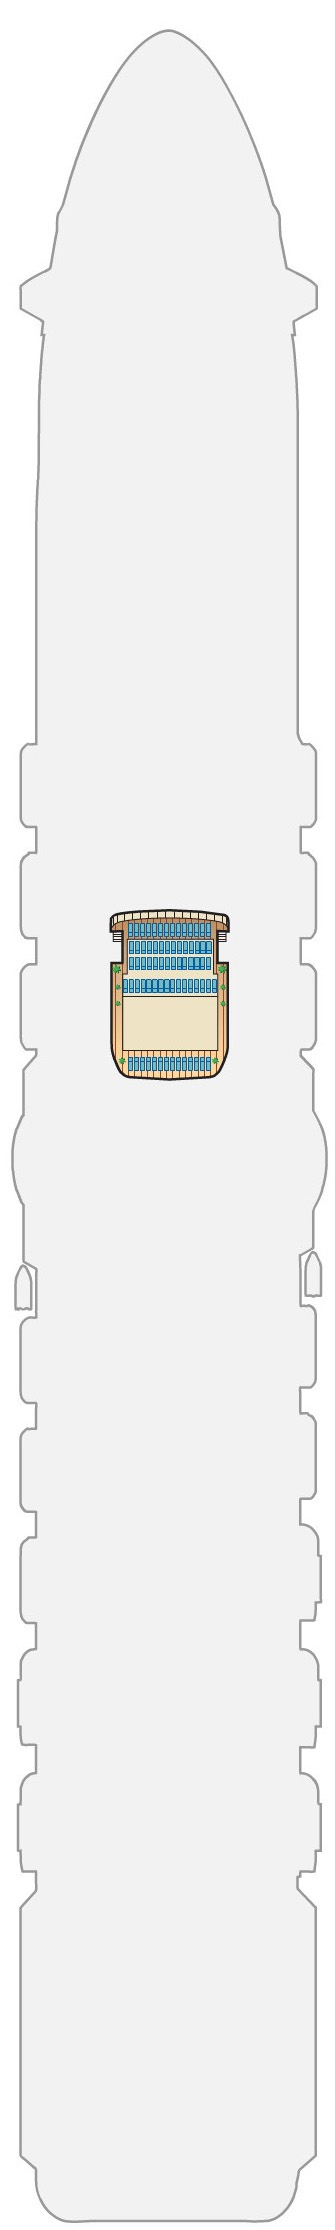 Royal Princess Deck 19 - Sky layout